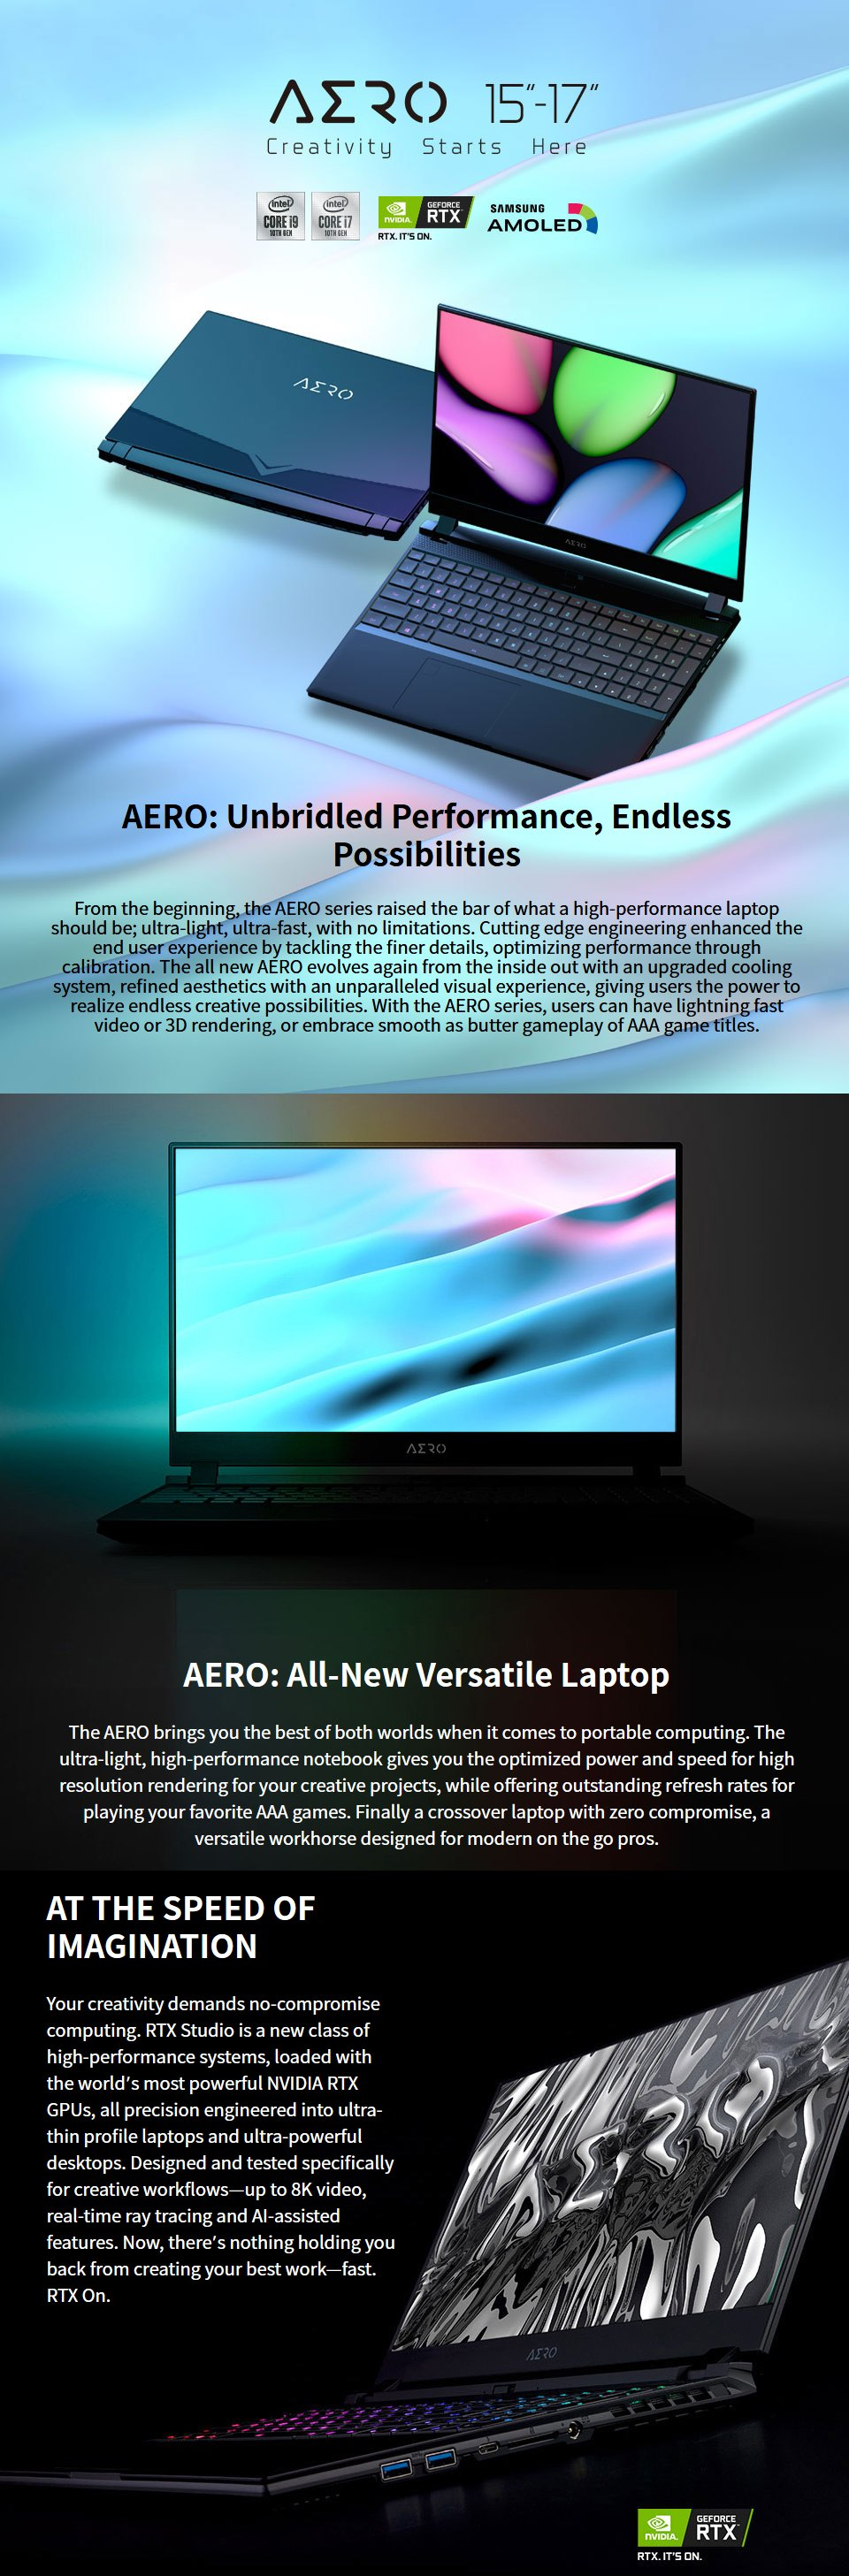 Gigabyte AERO 17 Core i7 RTX 2070 Super 17.3in UHD HDR Laptop features